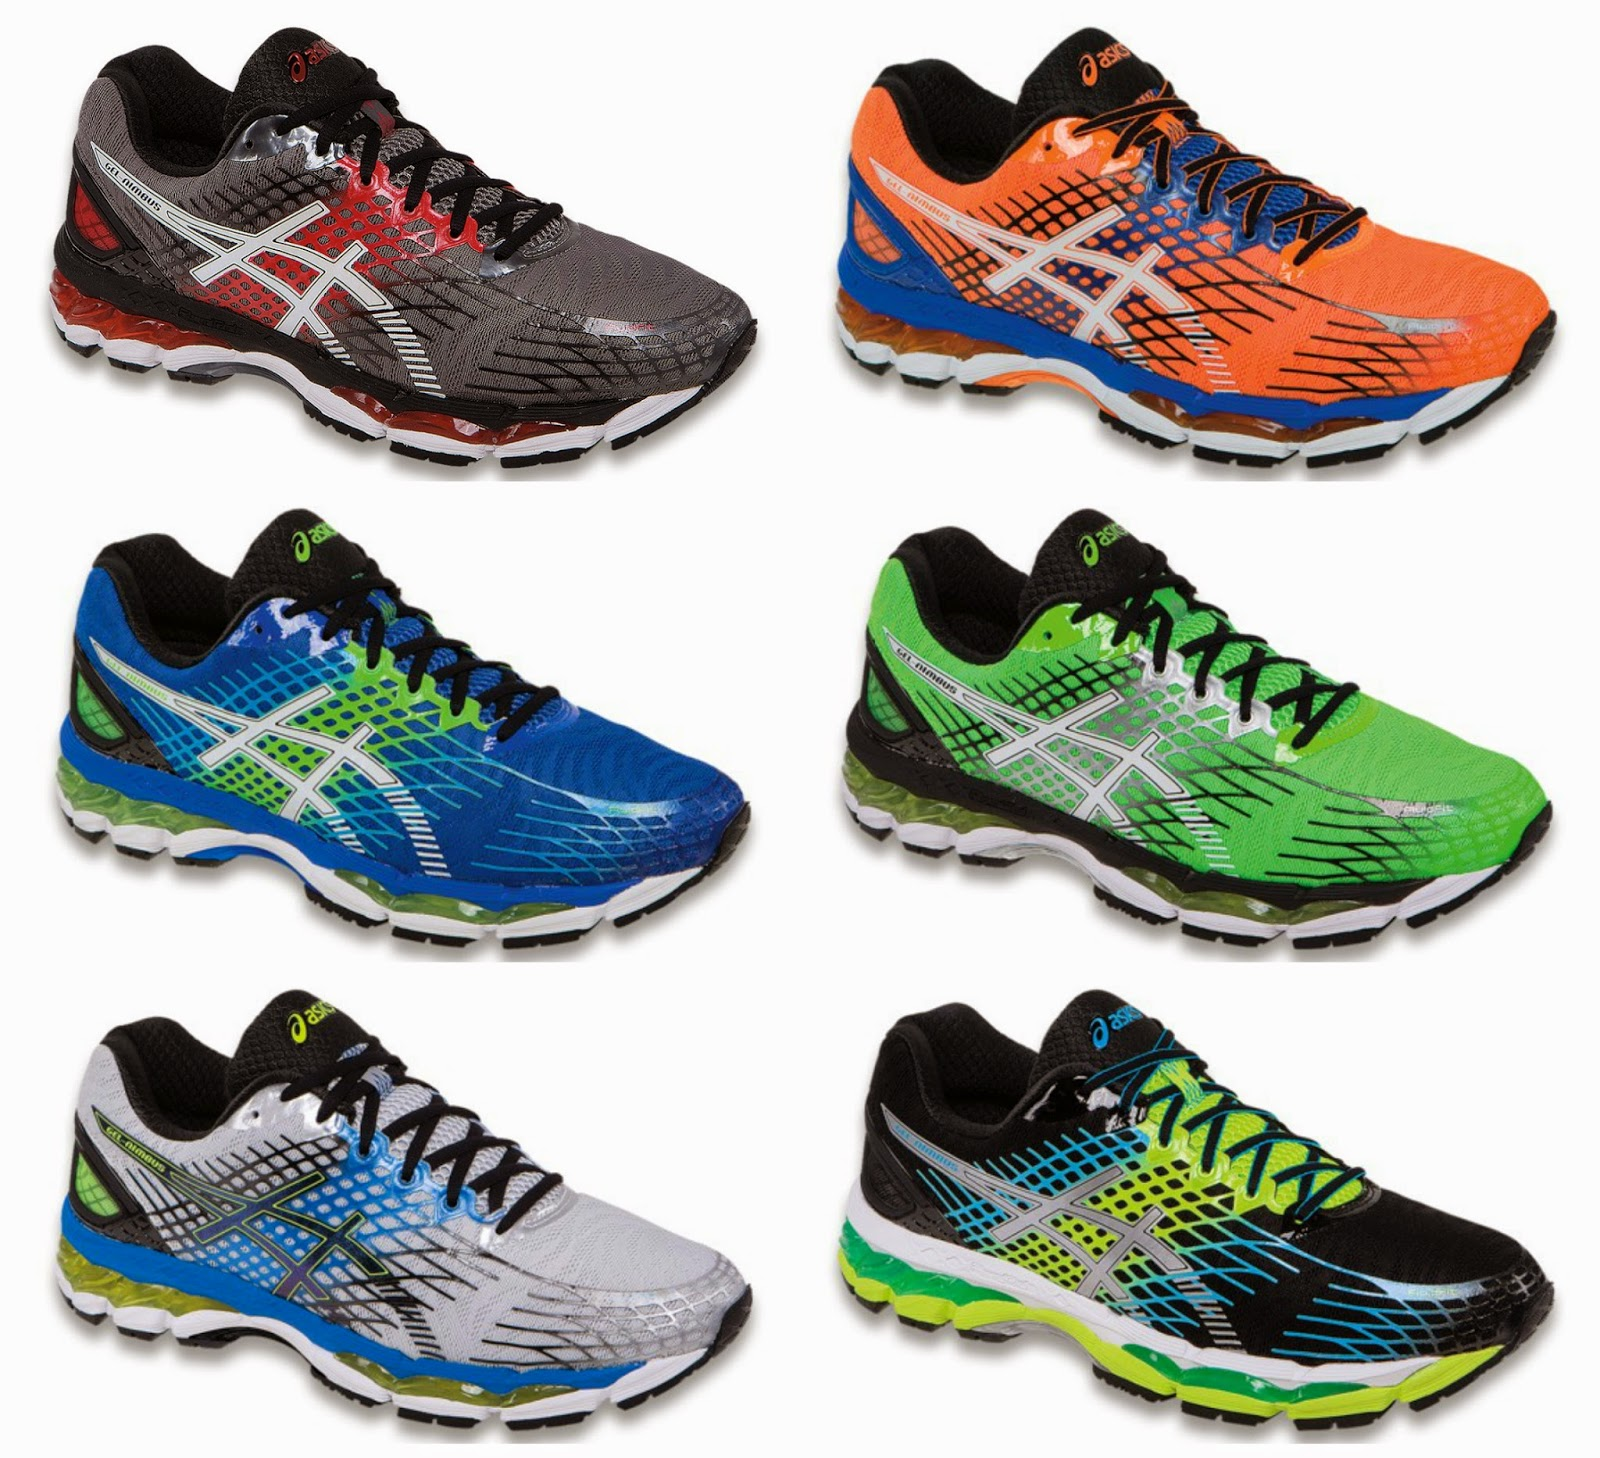 asics gel nimbus 17 review and win asics gear for a year i run for wine. Black Bedroom Furniture Sets. Home Design Ideas